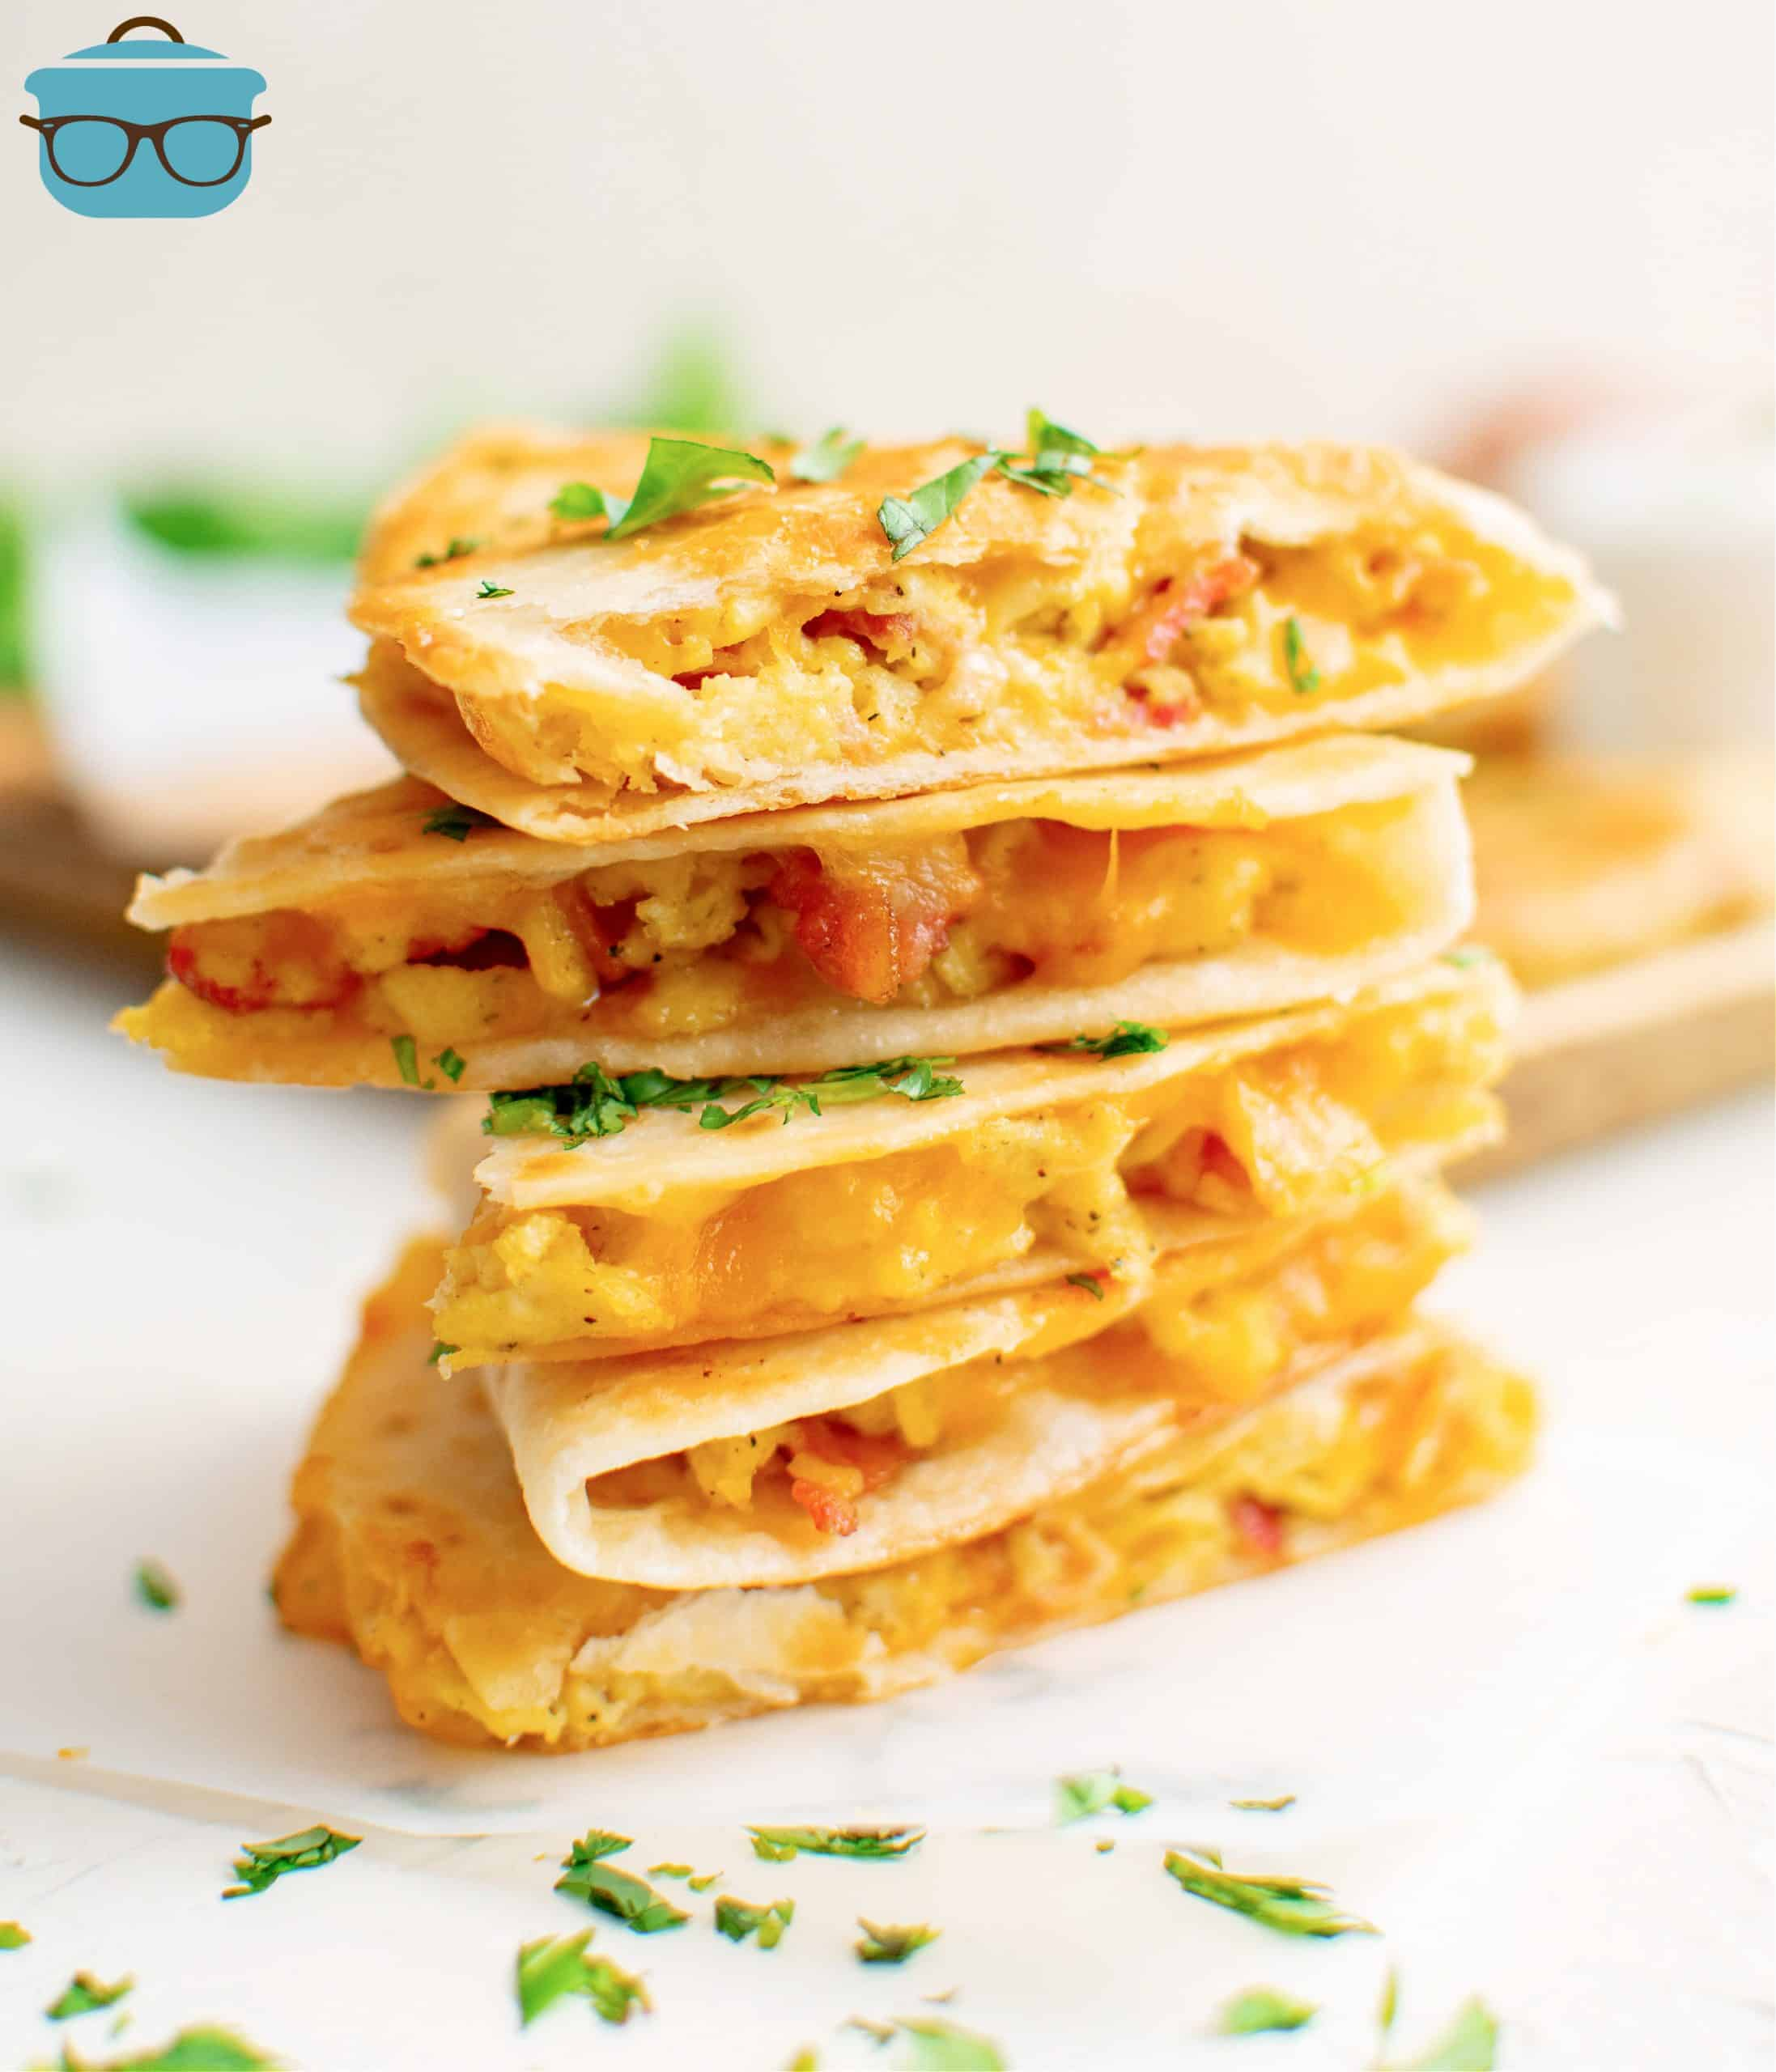 Breakfast Quesadillas cut in half and stacked in pile.